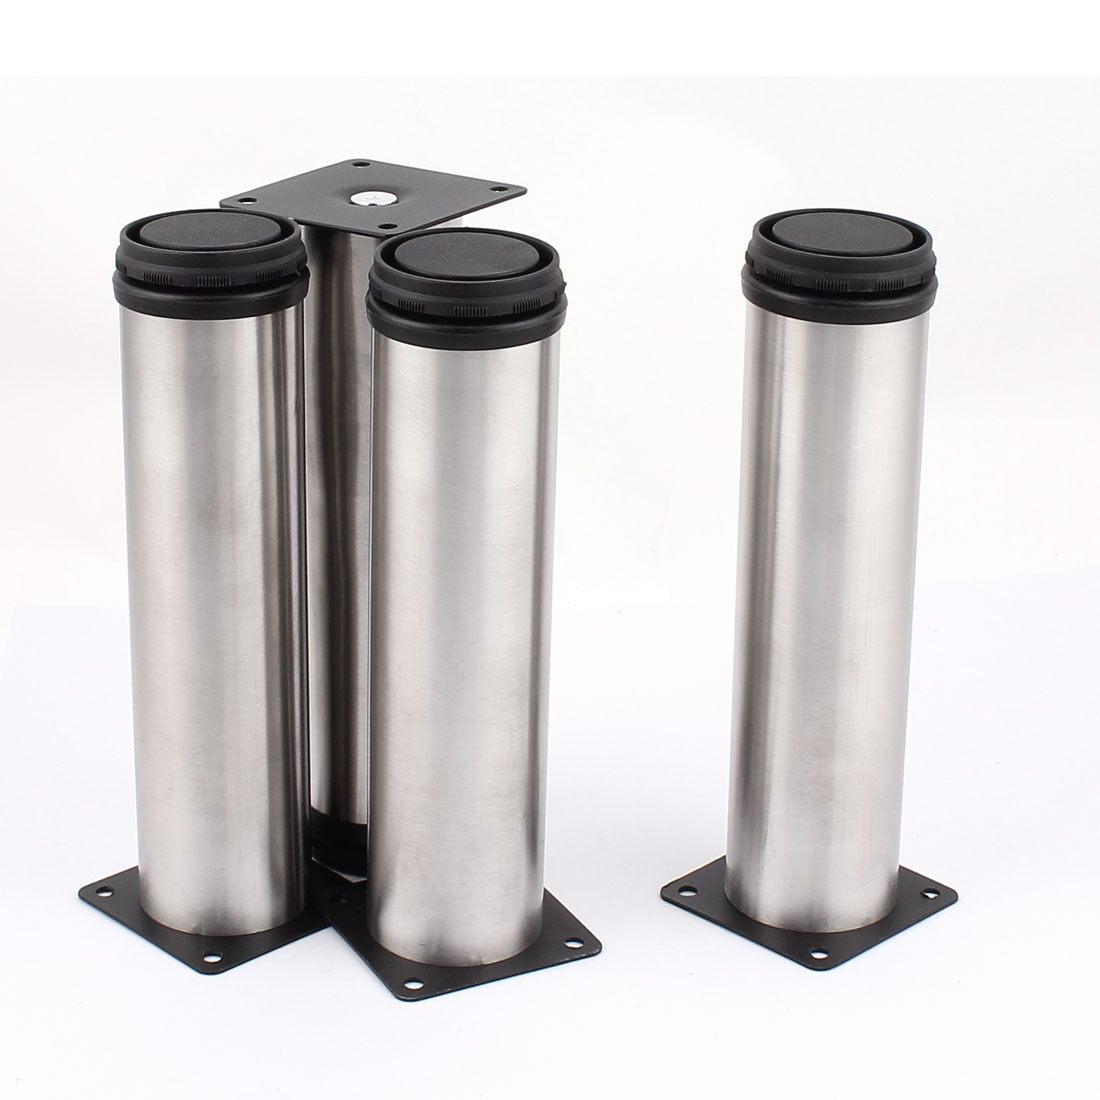 200mm Stainless Steel Adjustable Cabinet Legs Silver Tone 4pcs for Furniture Bed Table Sofa